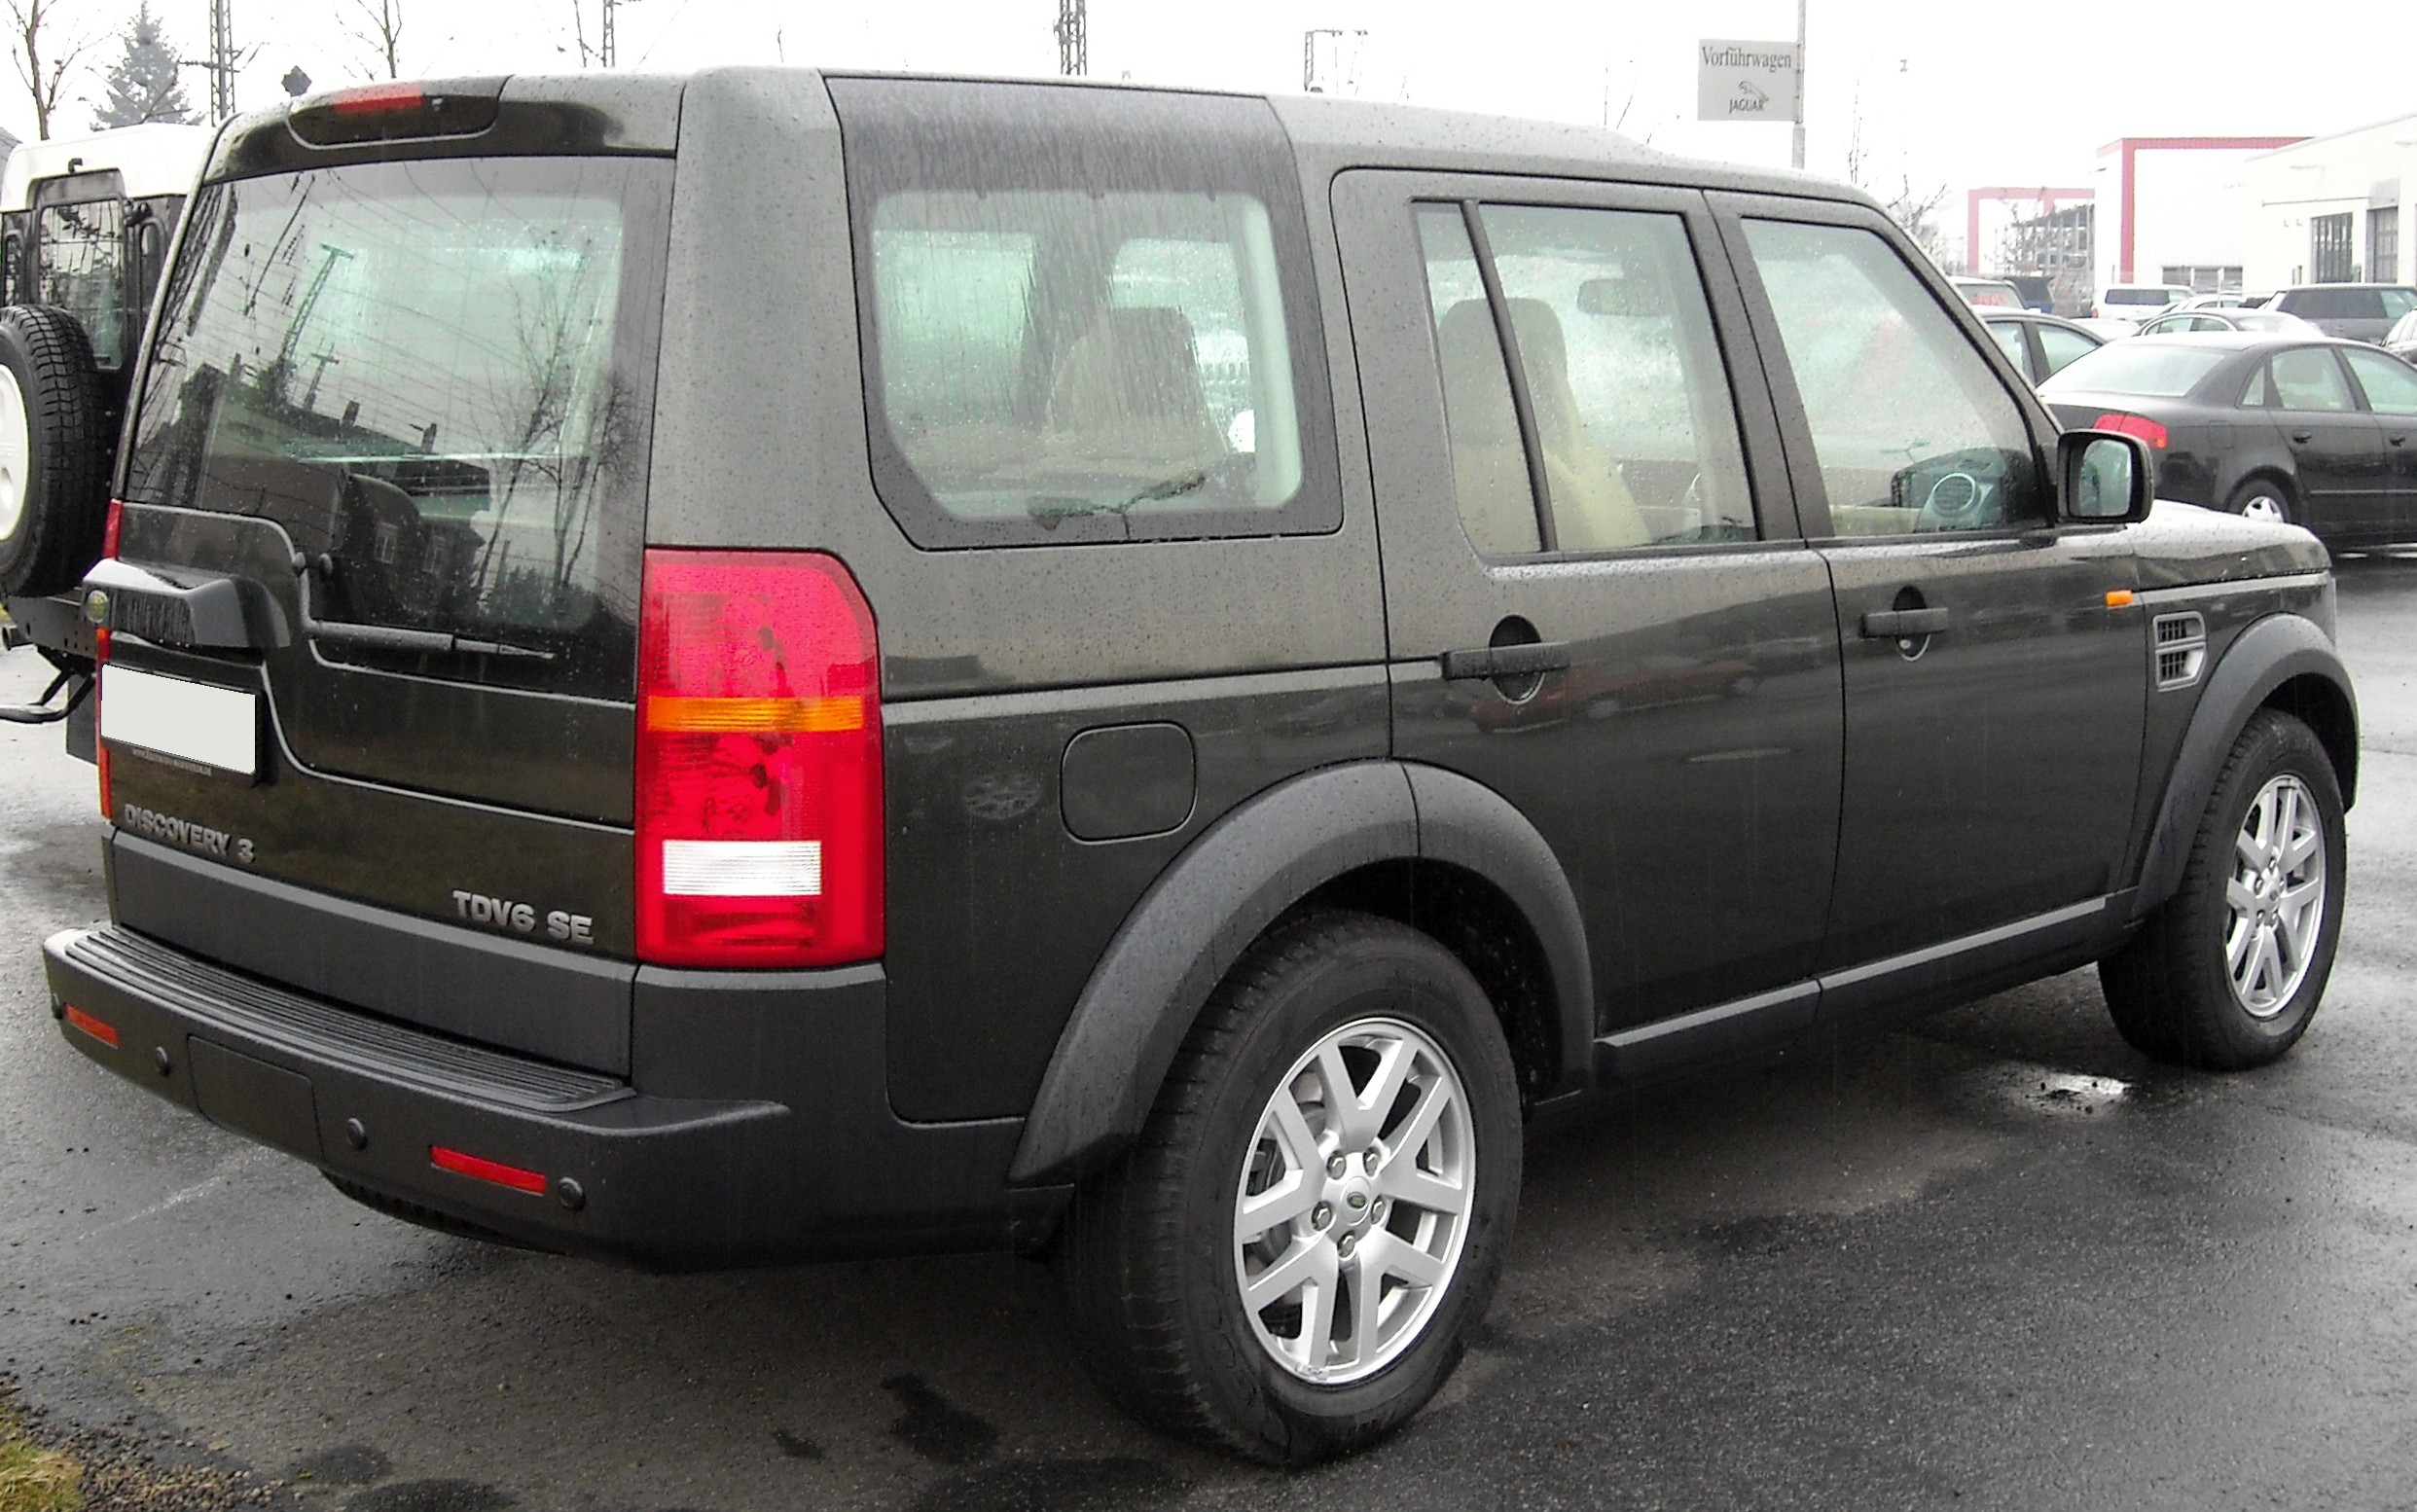 https://upload.wikimedia.org/wikipedia/commons/d/d7/Land_Rover_Discovery_3_rear_20090204.jpg